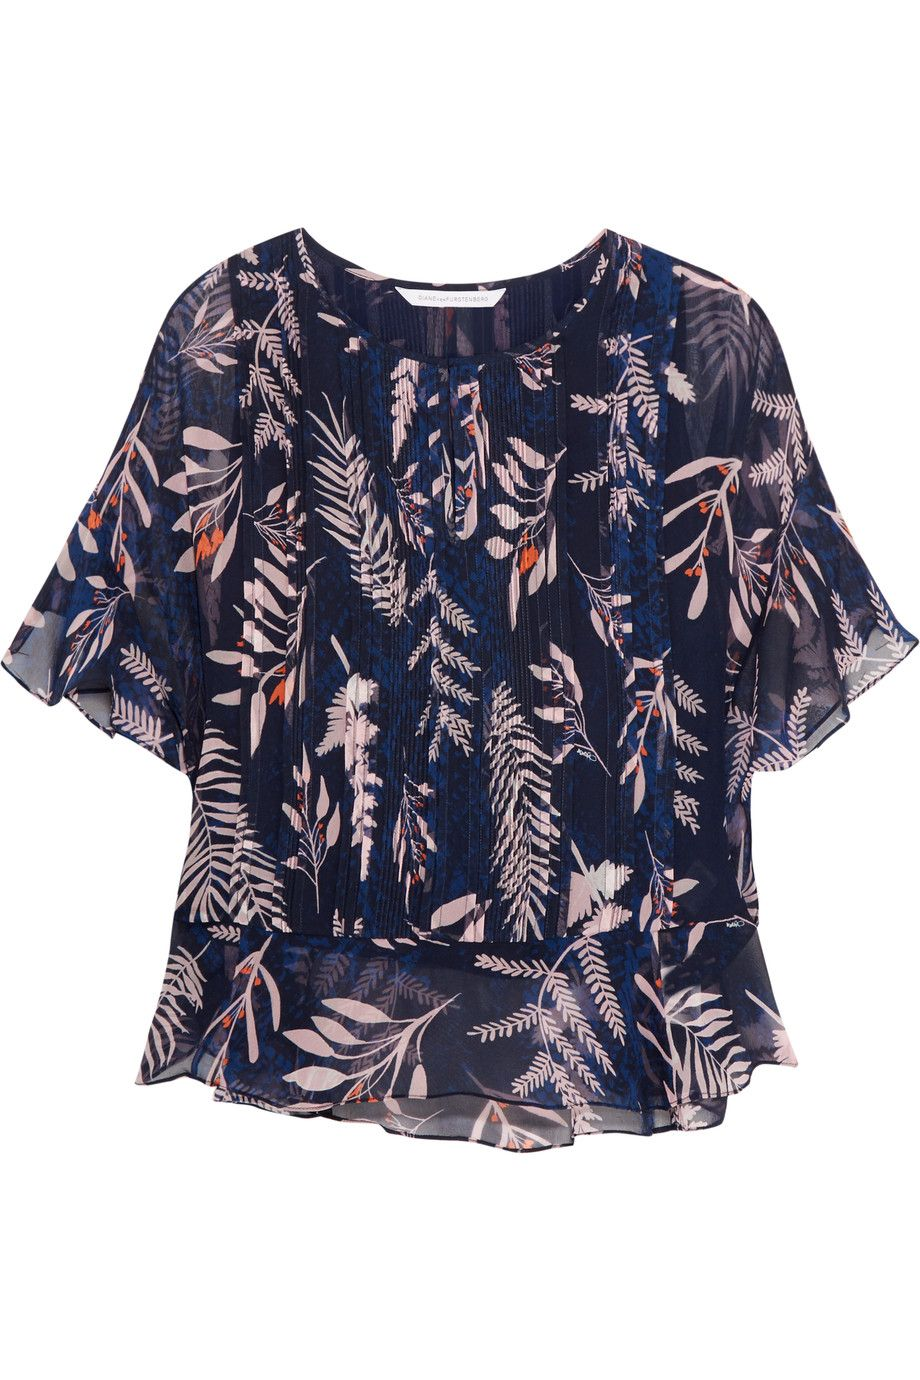 cacc44a1c1ee0 DIANE VON FURSTENBERG Holody pleated printed silk-chiffon blouse.   dianevonfurstenberg  cloth  blouse